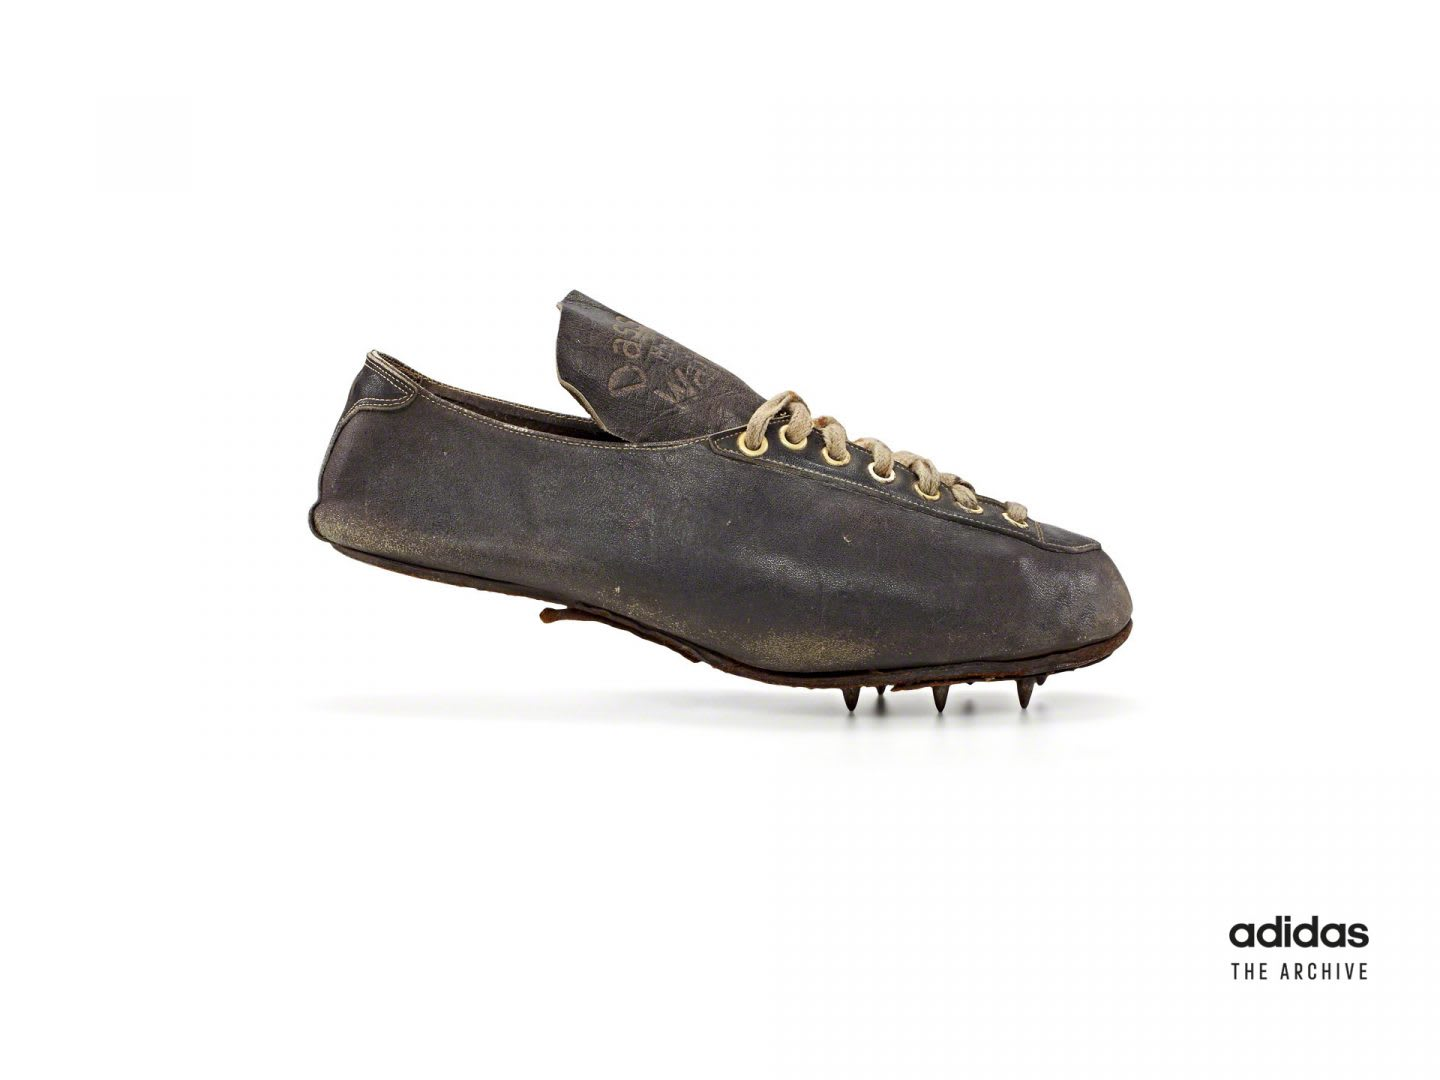 Old fashioned running spike from adidas, Lina Radke, athlete, Olympics, 1928, Adolf, Dassler, Adi, adidas, sports, shoes, shoemaker, history, archive